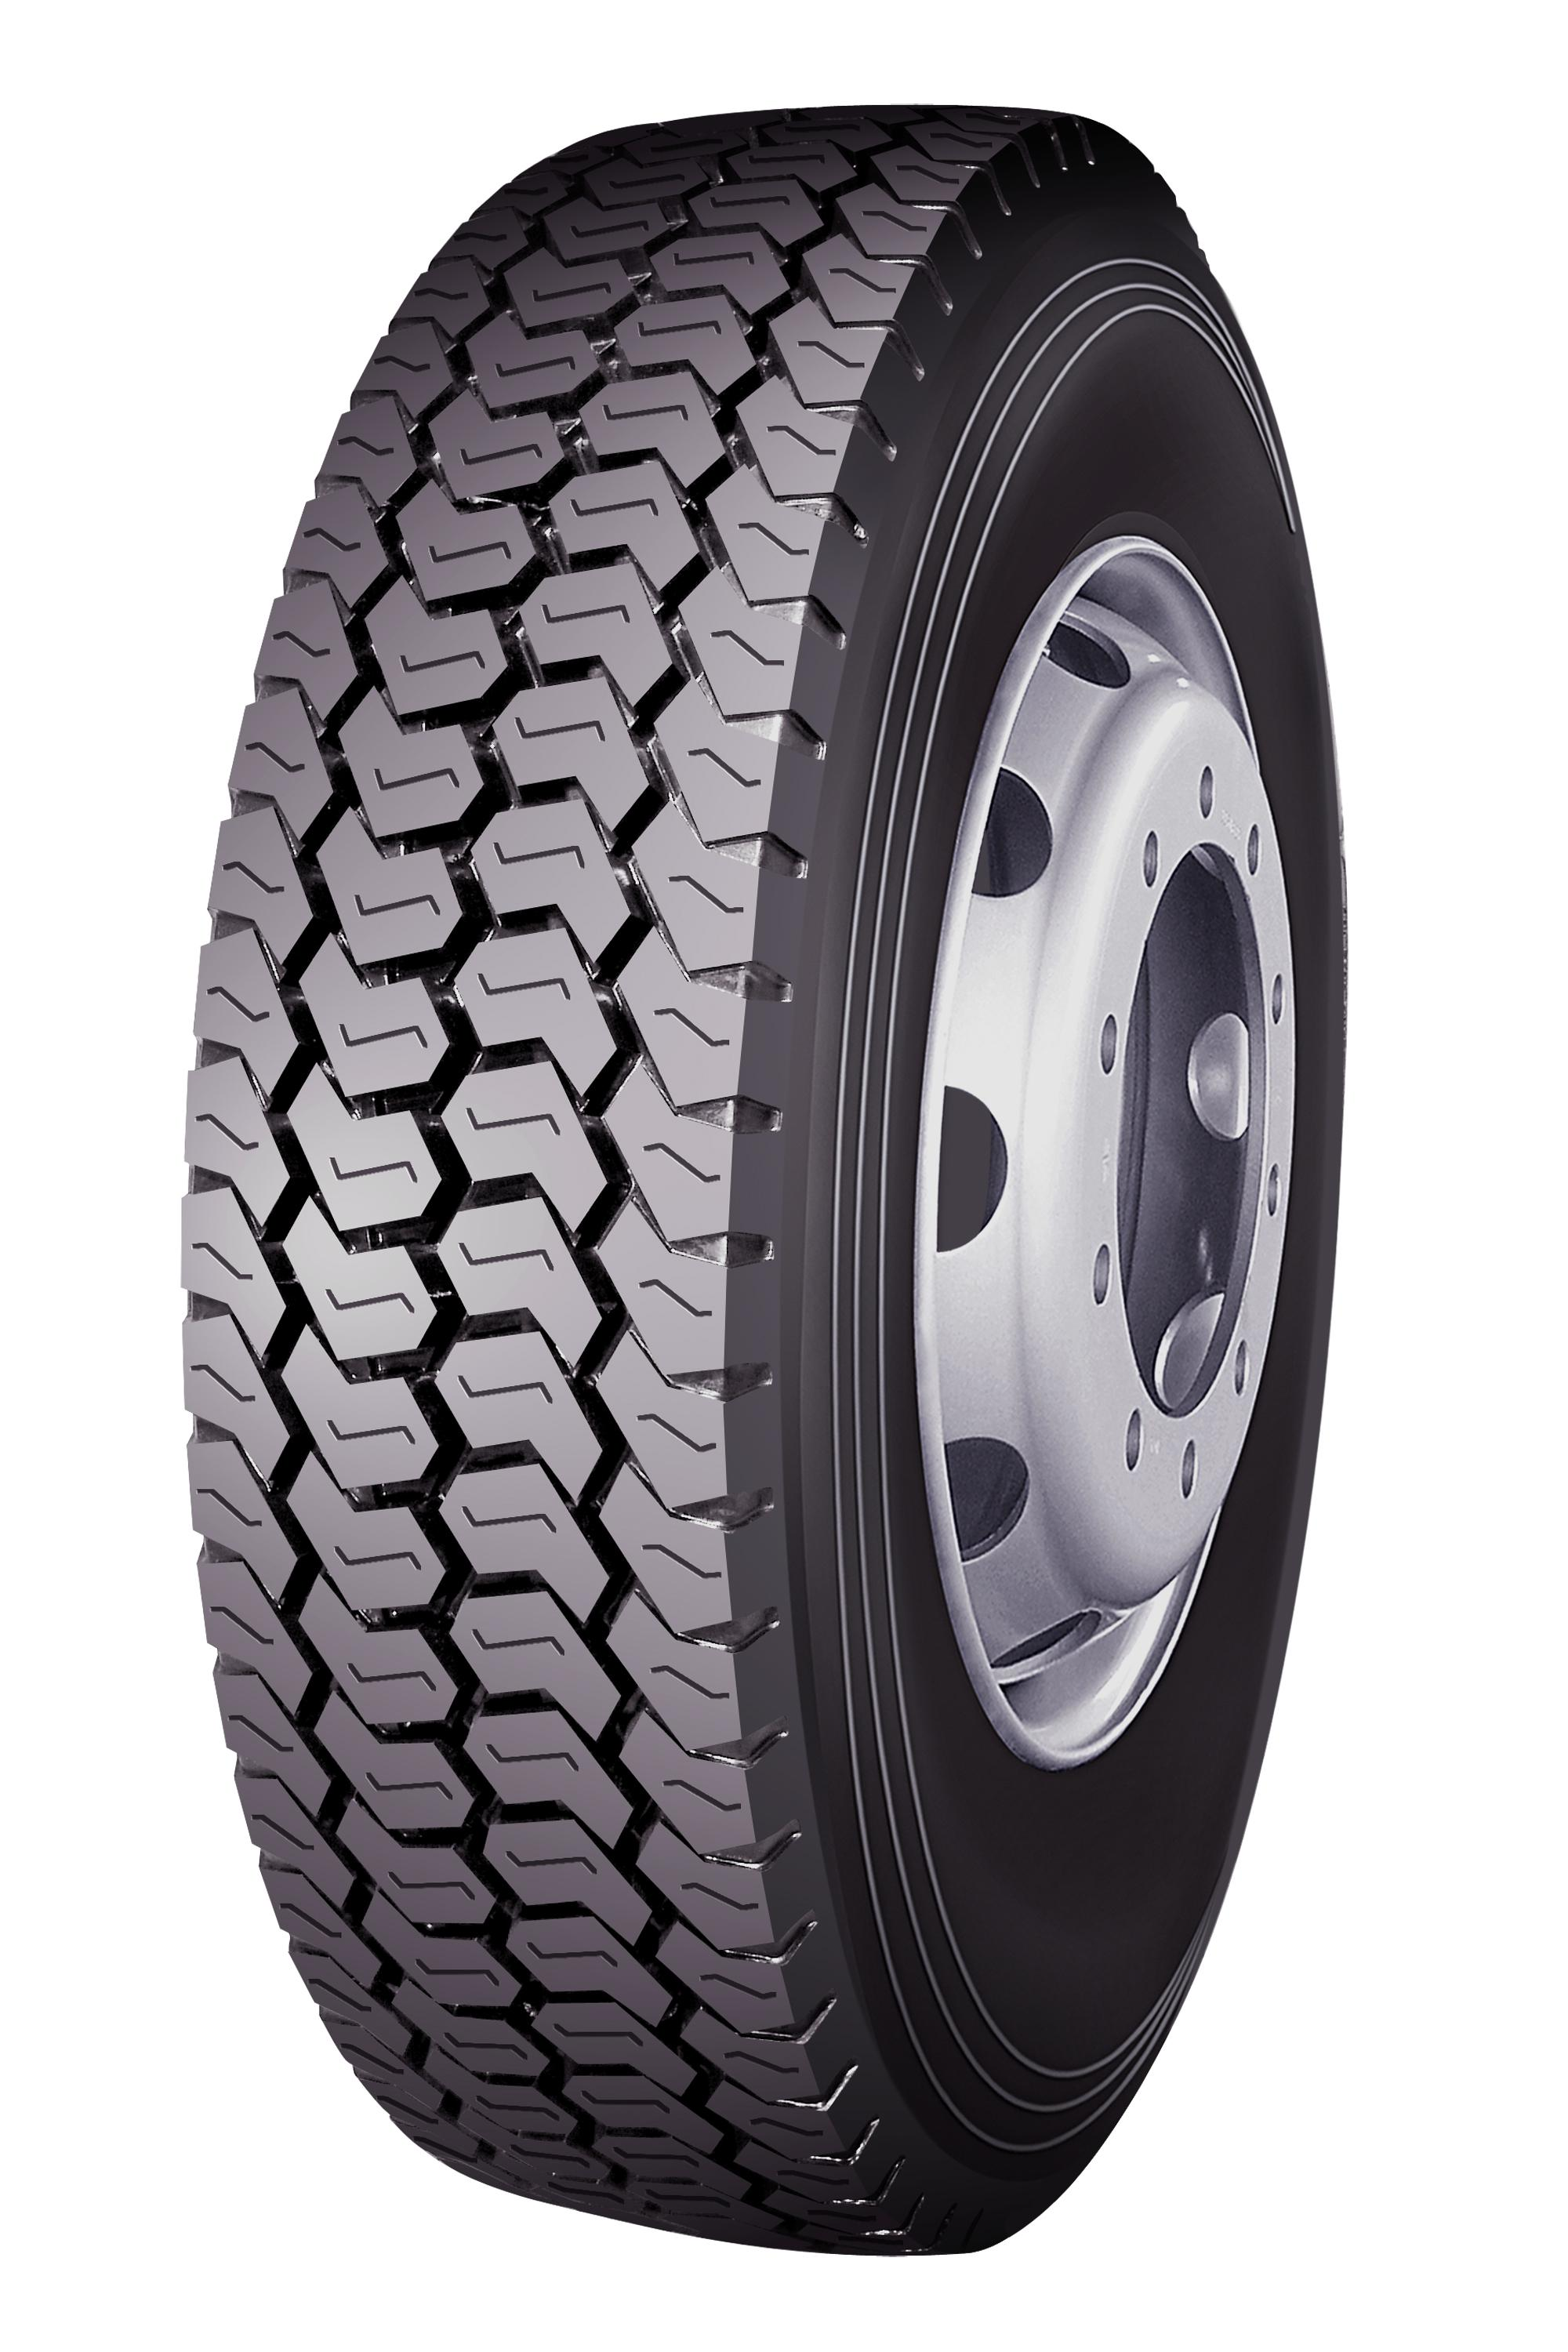 LM508 ALL STEEL RADIAL TRUCK AND BUS TYRES